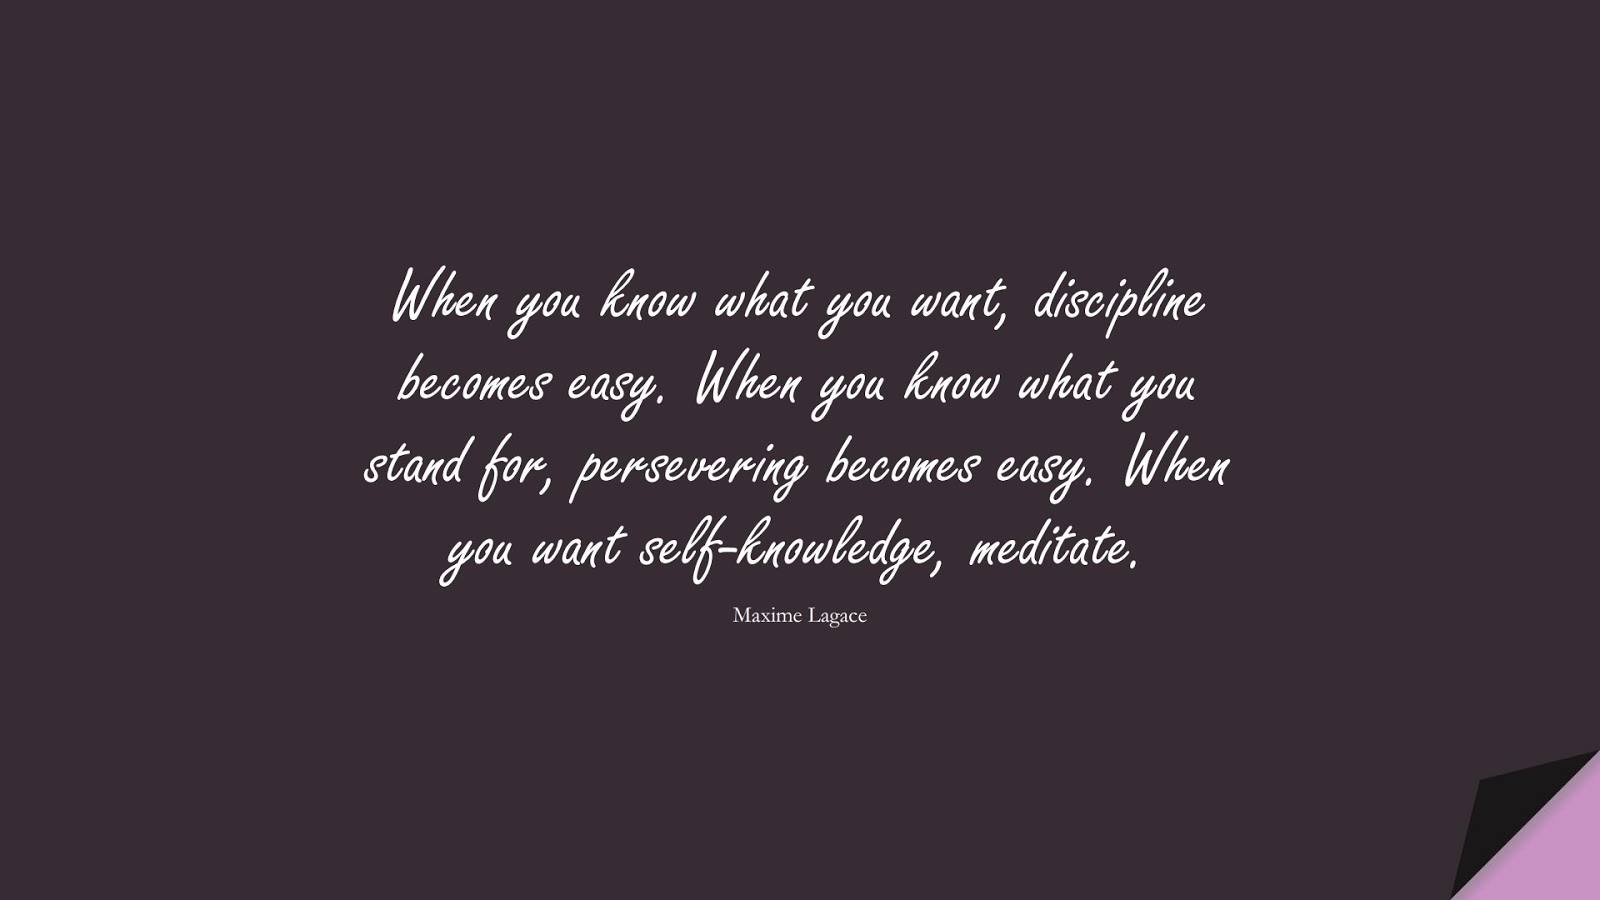 When you know what you want, discipline becomes easy. When you know what you stand for, persevering becomes easy. When you want self-knowledge, meditate. (Maxime Lagace);  #CharacterQuotes